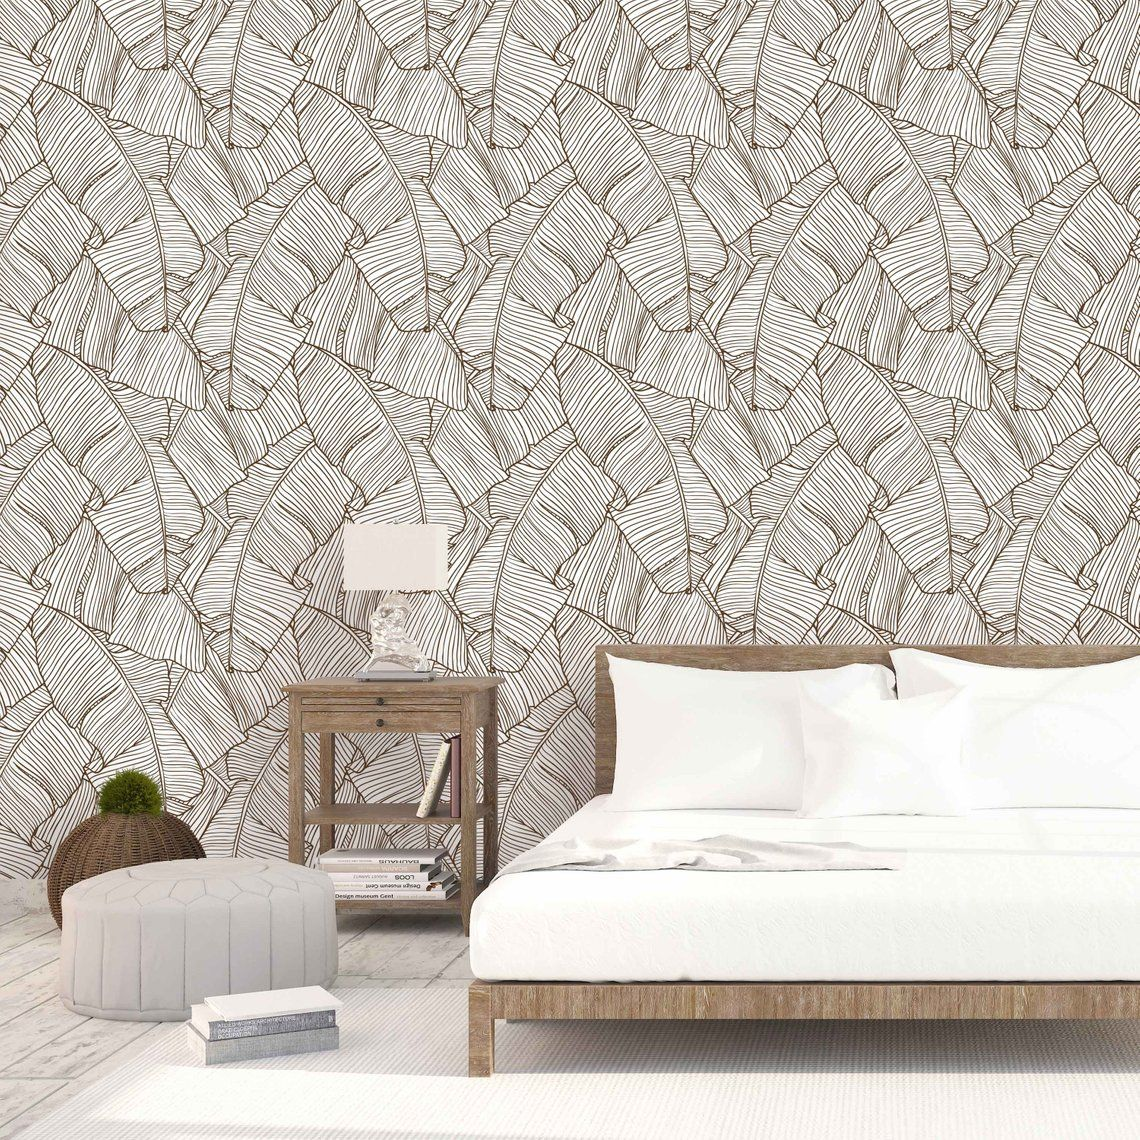 Peel And Stick Wallpaper Removable Wall Sticker 034 Etsy In 2021 Peel And Stick Wallpaper Removable Wall Stickers Wood Wall Design